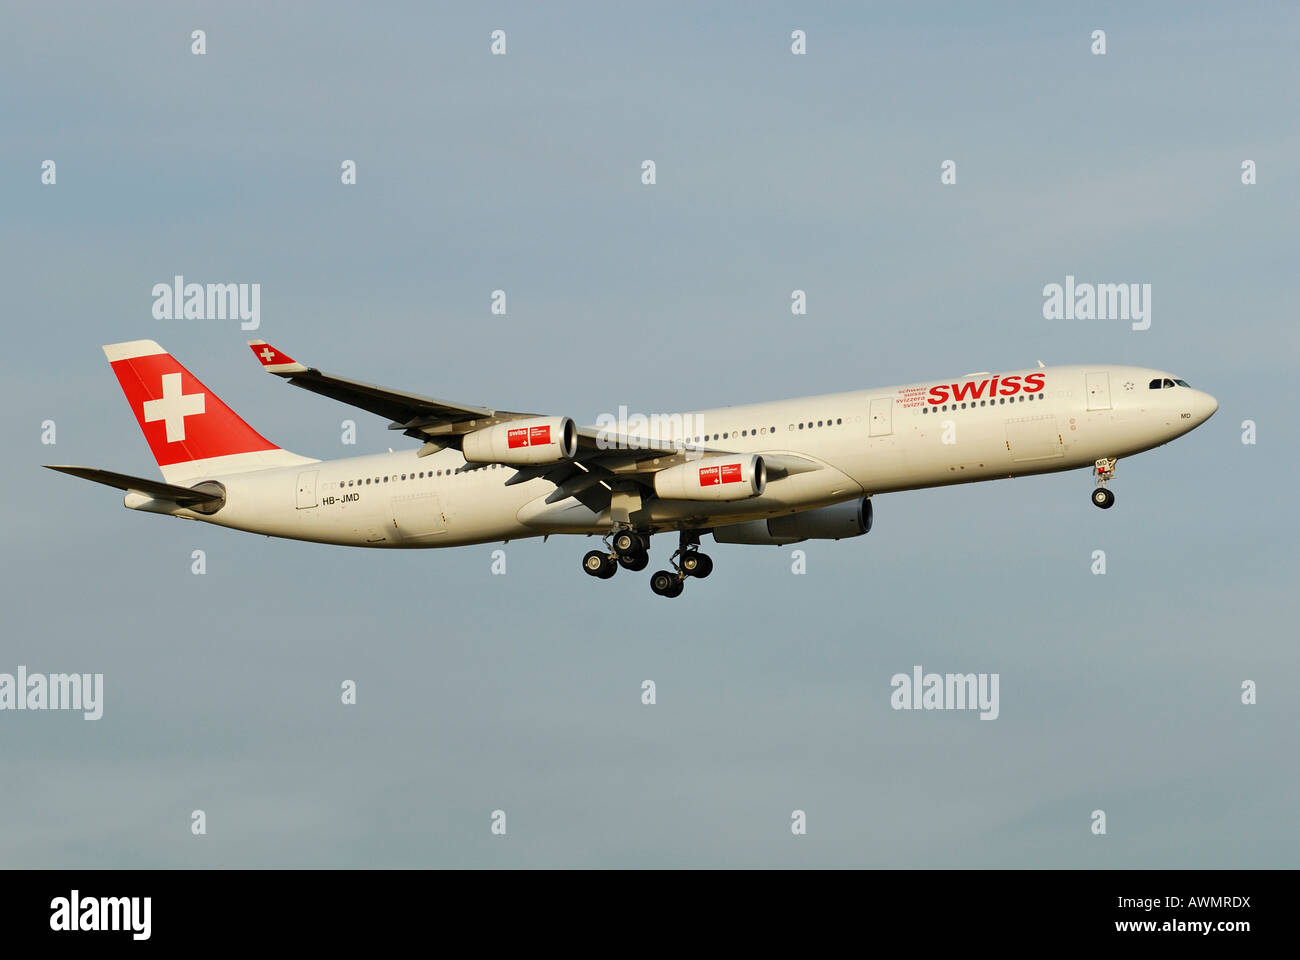 Airbus a340 313 swiss international air lines aviation photo - Airbus A340 313 From The Swiss International Air Lines Ag